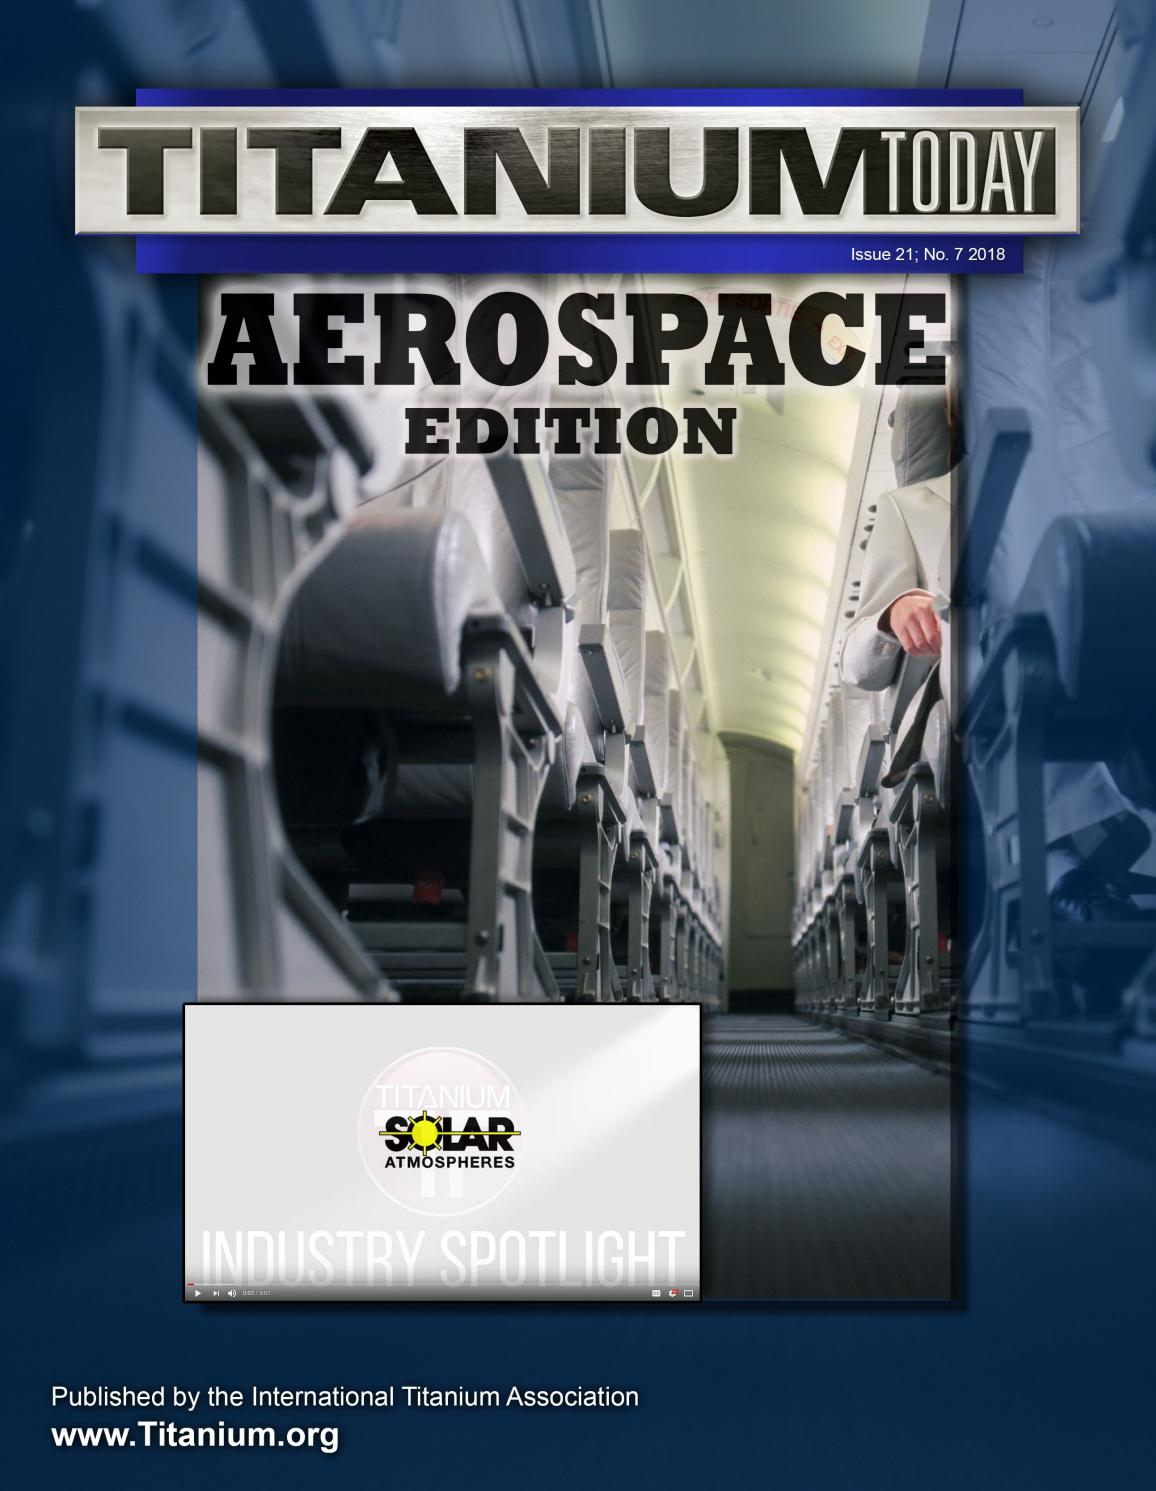 TITANIUM TODAY - Aerospace Edition 2018 by TITANIUMTODAY - issuu